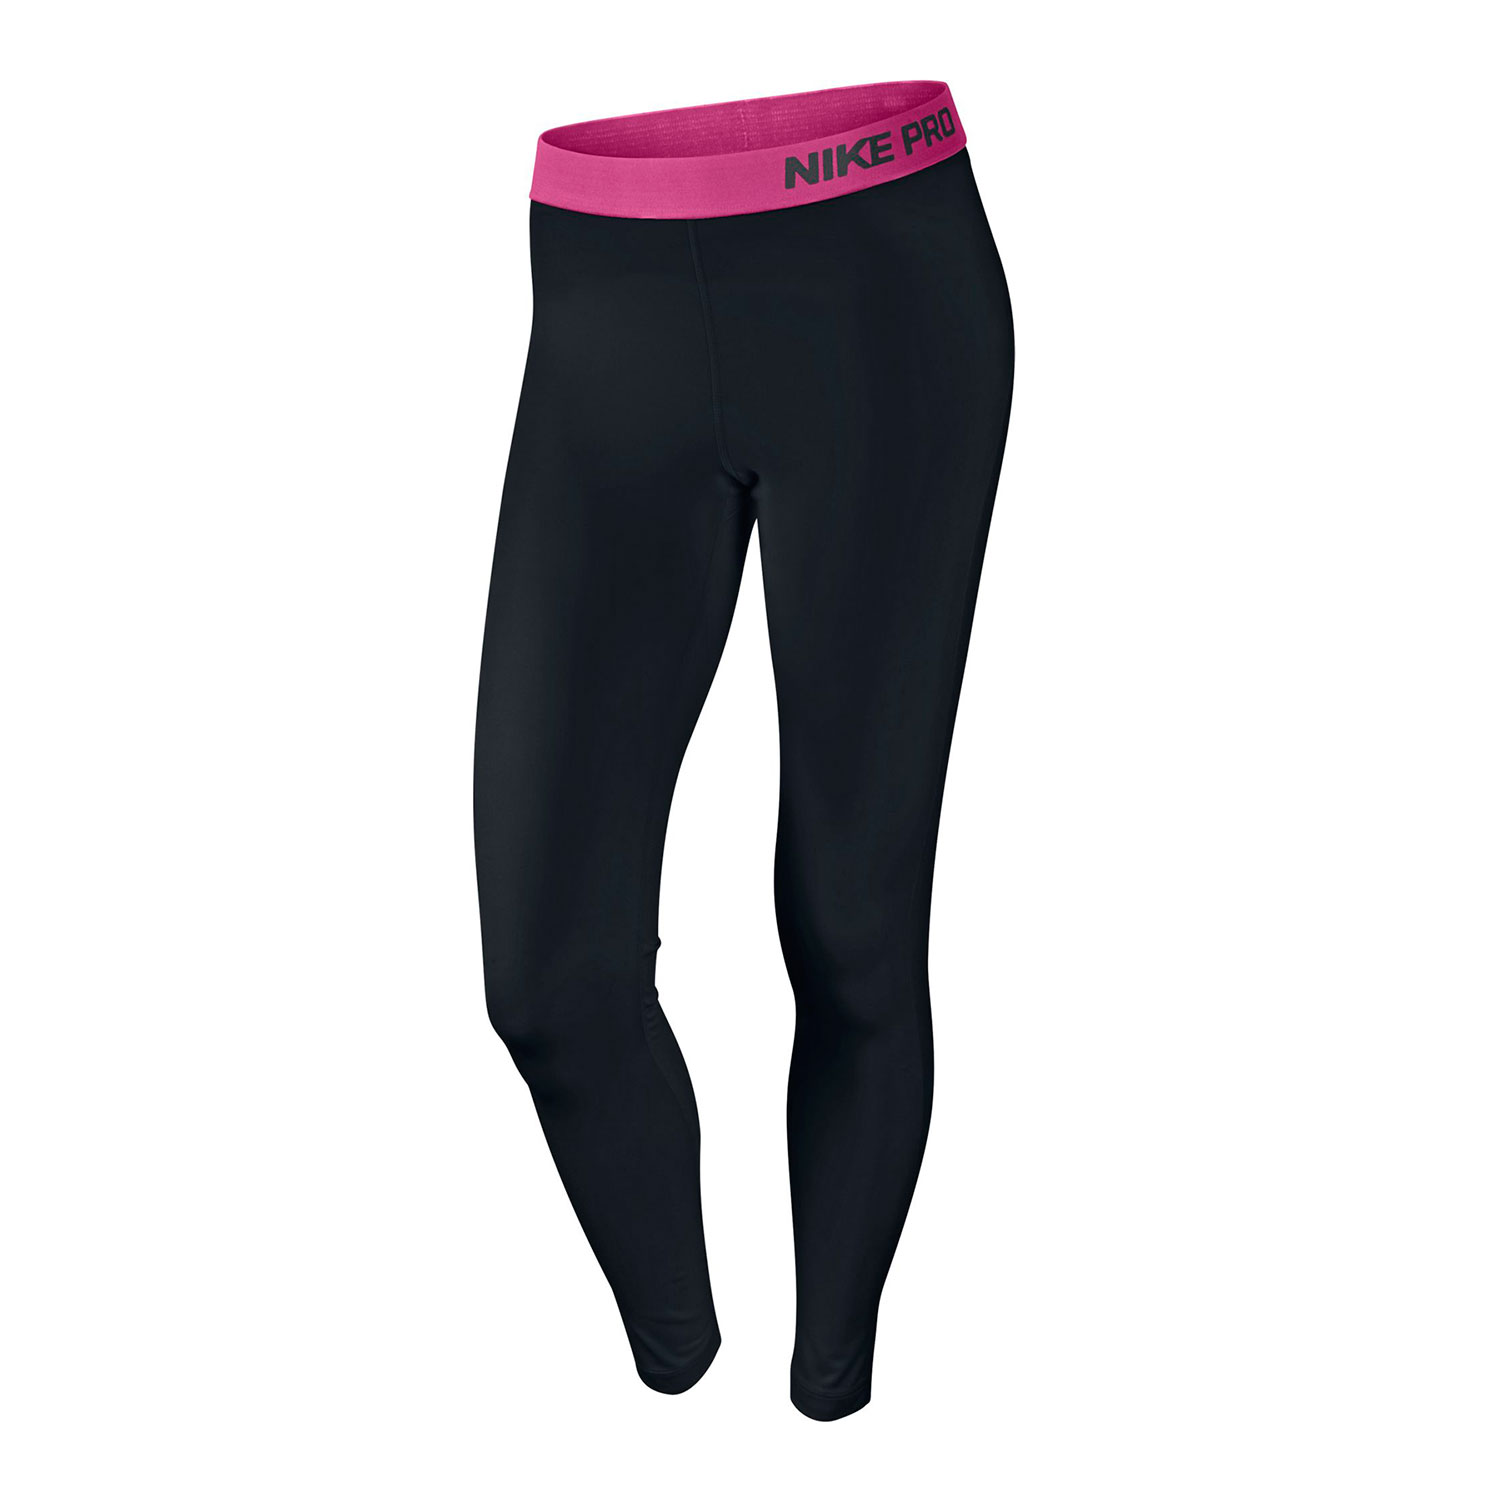 aebcb47be9ba Womens Compression Pants  Reviews and Recommendations